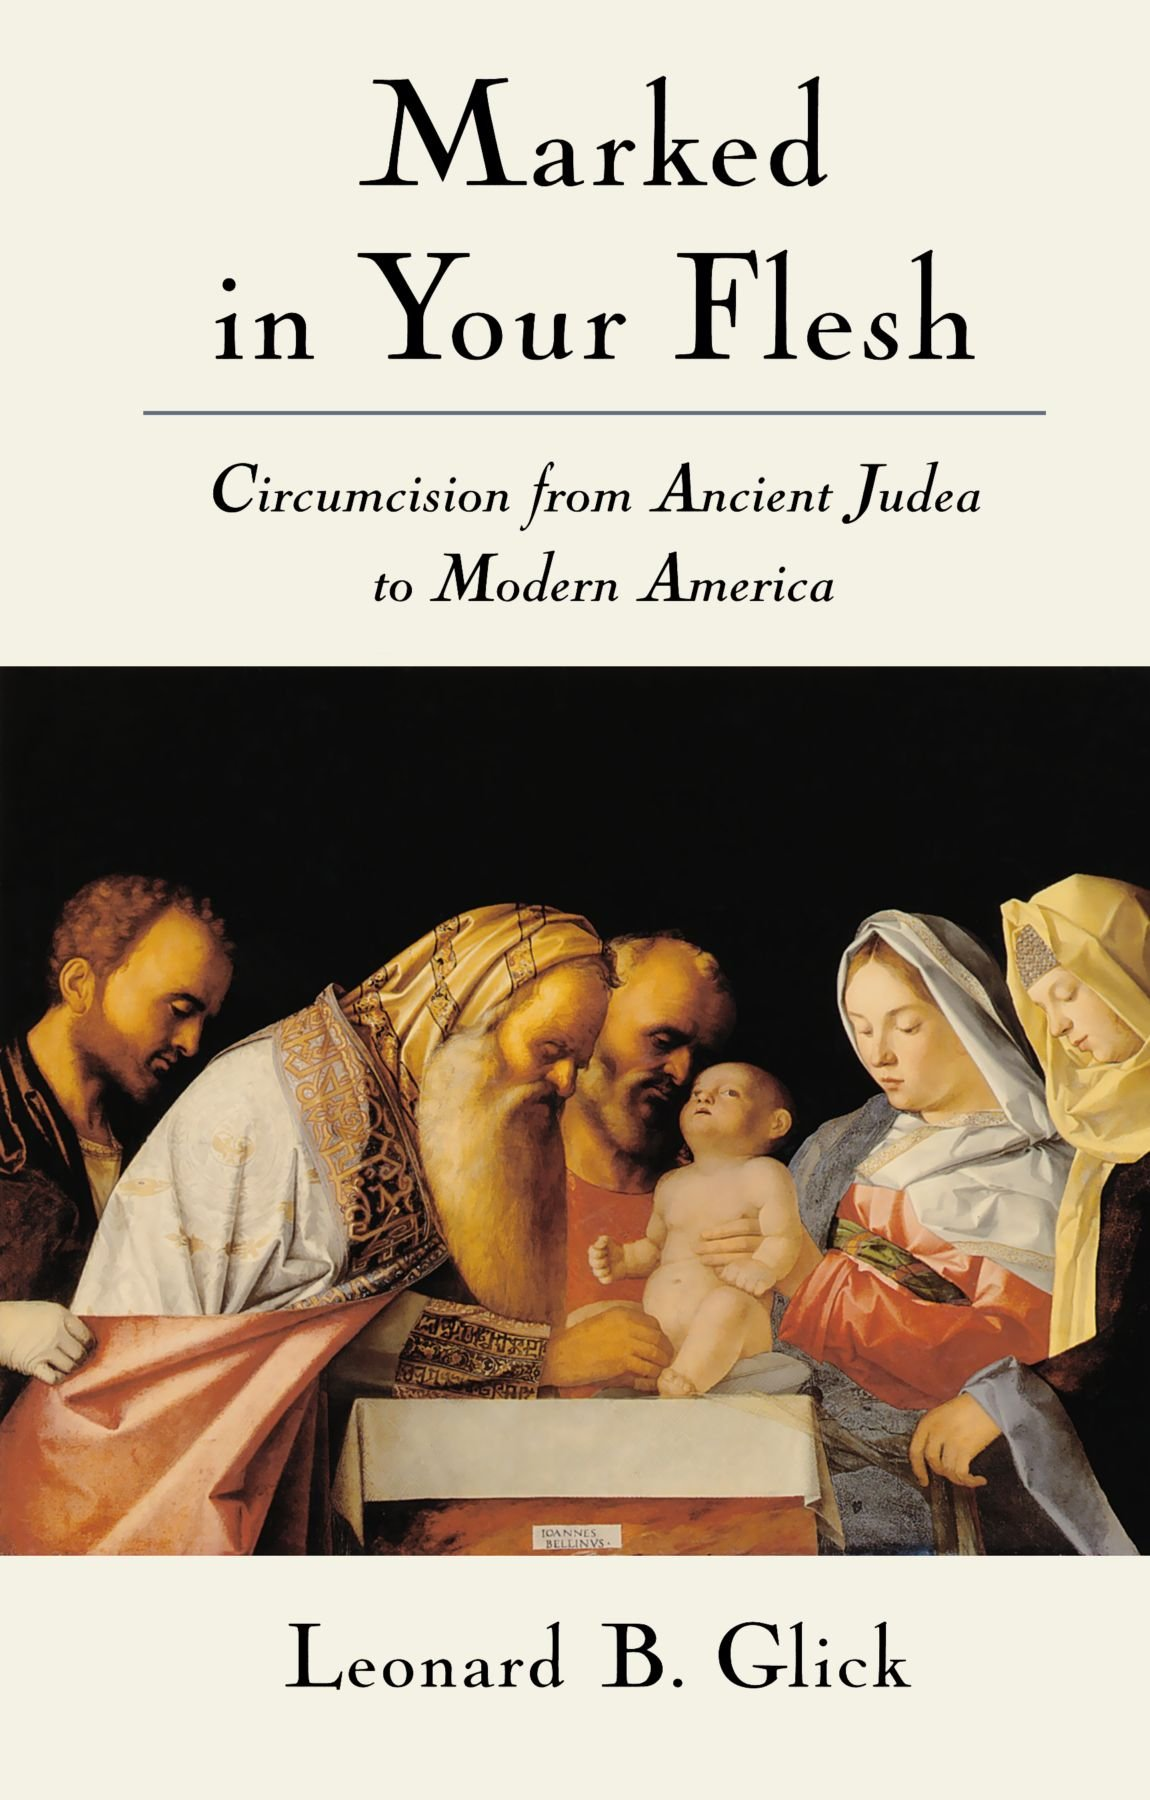 Marked in Your - Flesh Circumcision from Ancient Judea to Modern America